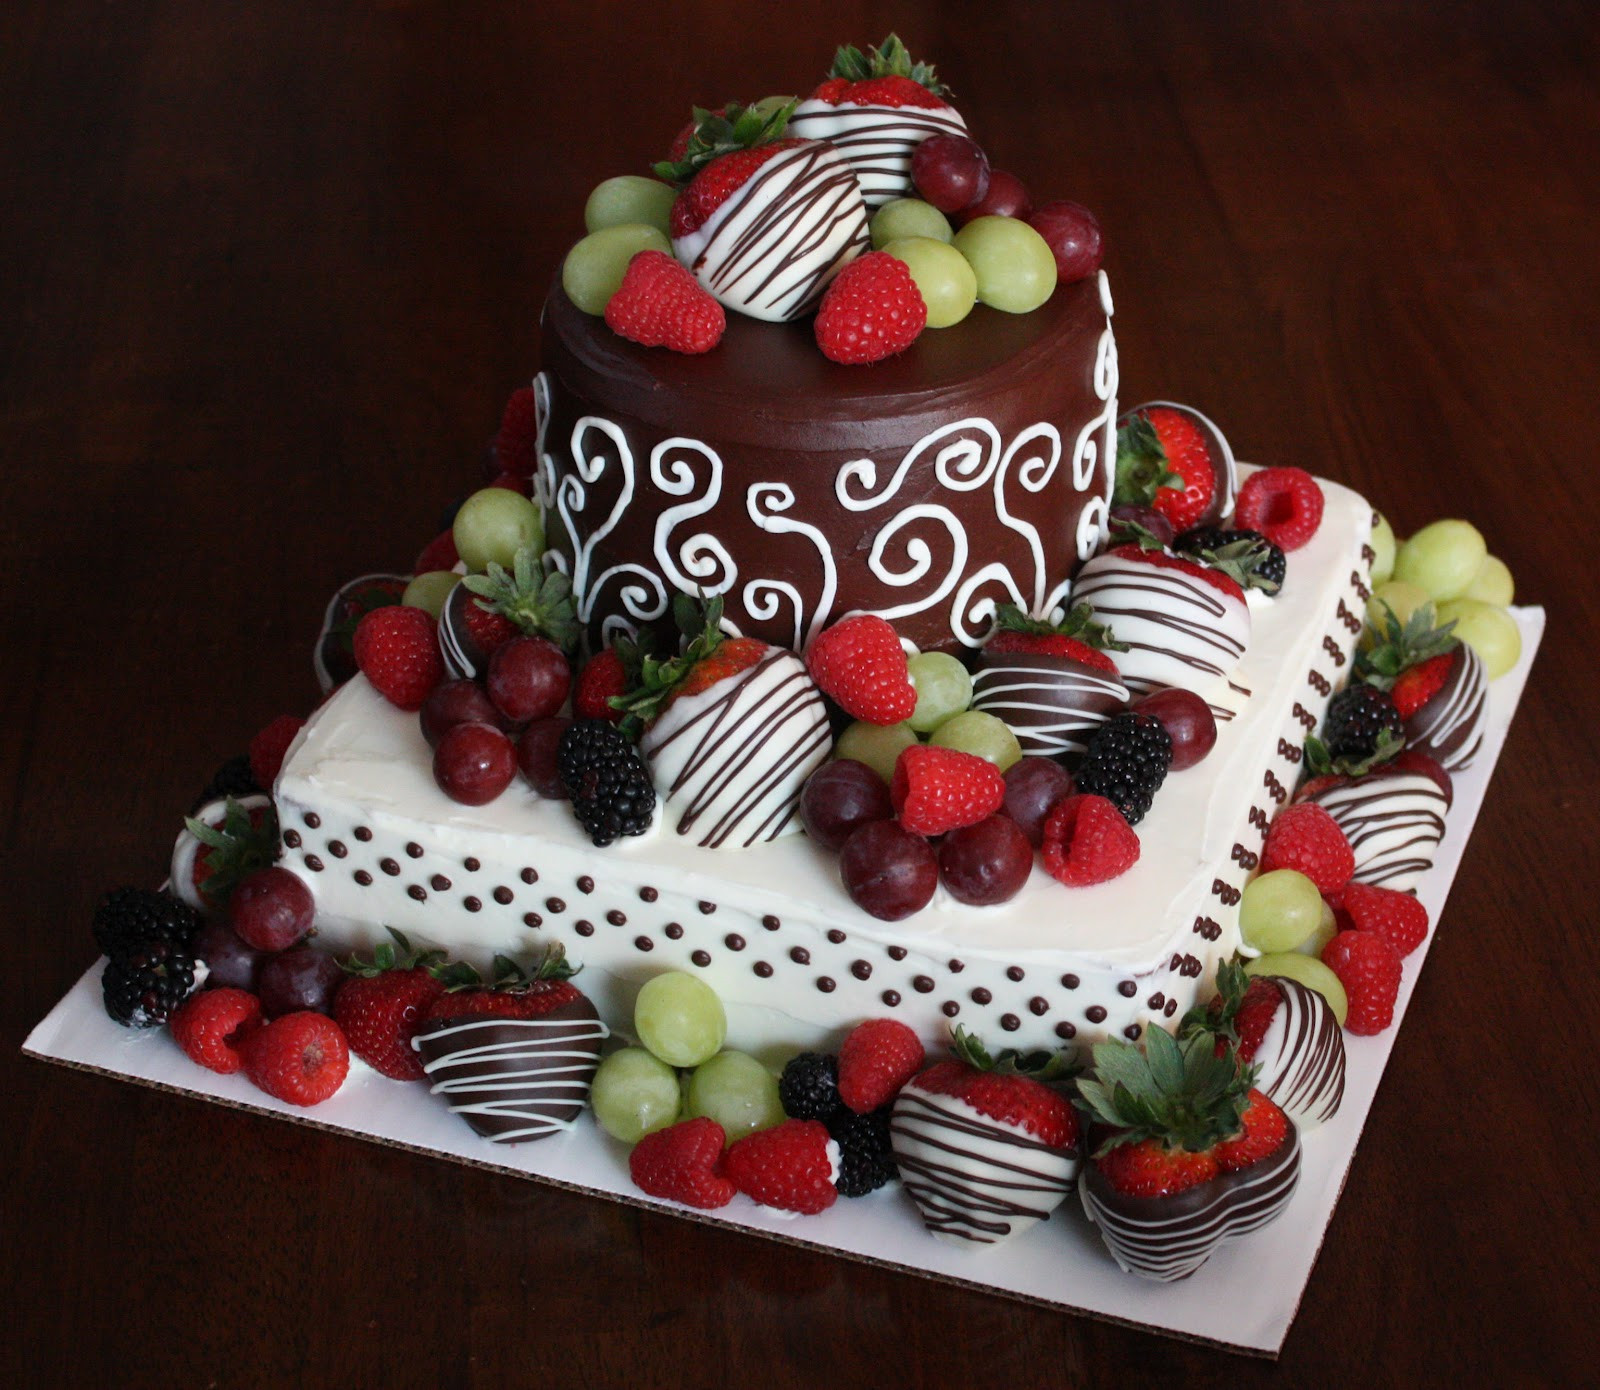 Best ideas about 40th Birthday Cake Ideas . Save or Pin Straight to Cake 40th Birthday Cake Now.